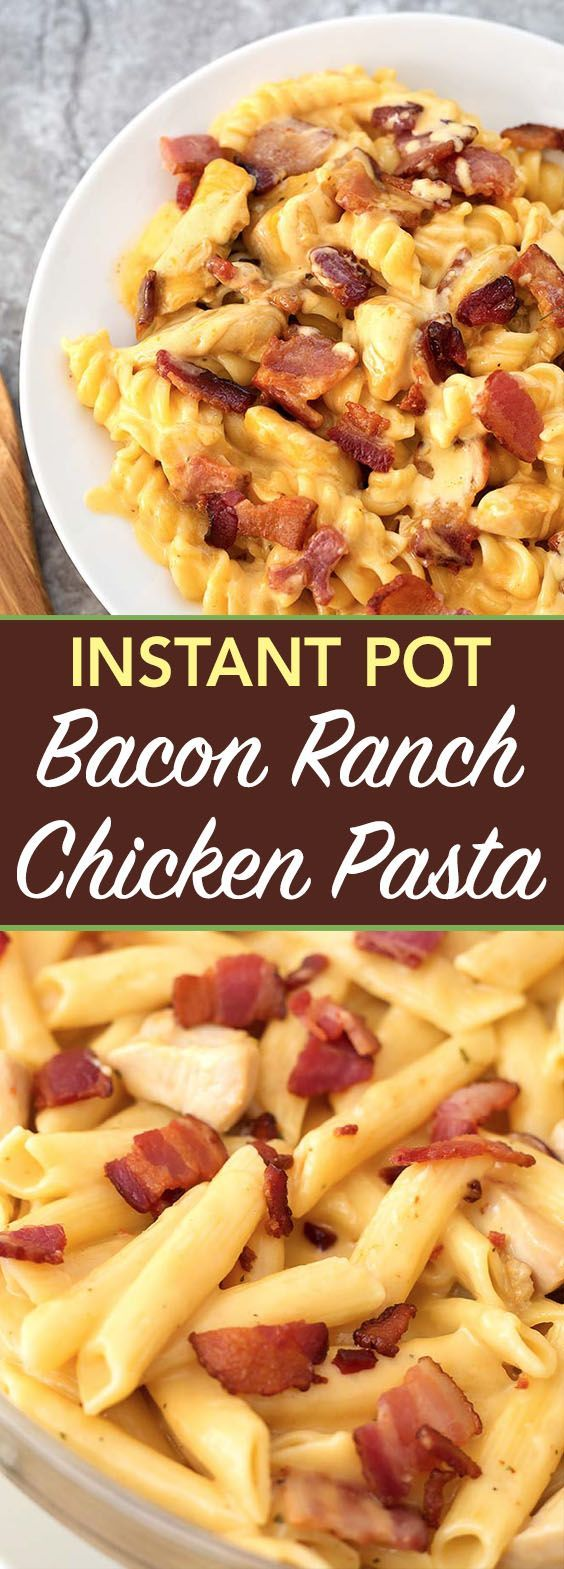 Instant Pot Chicken Bacon Ranch Pasta is a tasty cheesy pasta dinner with chicken and ranch dressing flavor, made in your electric pressure cooker. simplyhappyfoodie.com #instantpotrecipes #instantpot #instantpotchickenbaconranchpasta #instantpotchickenpasta